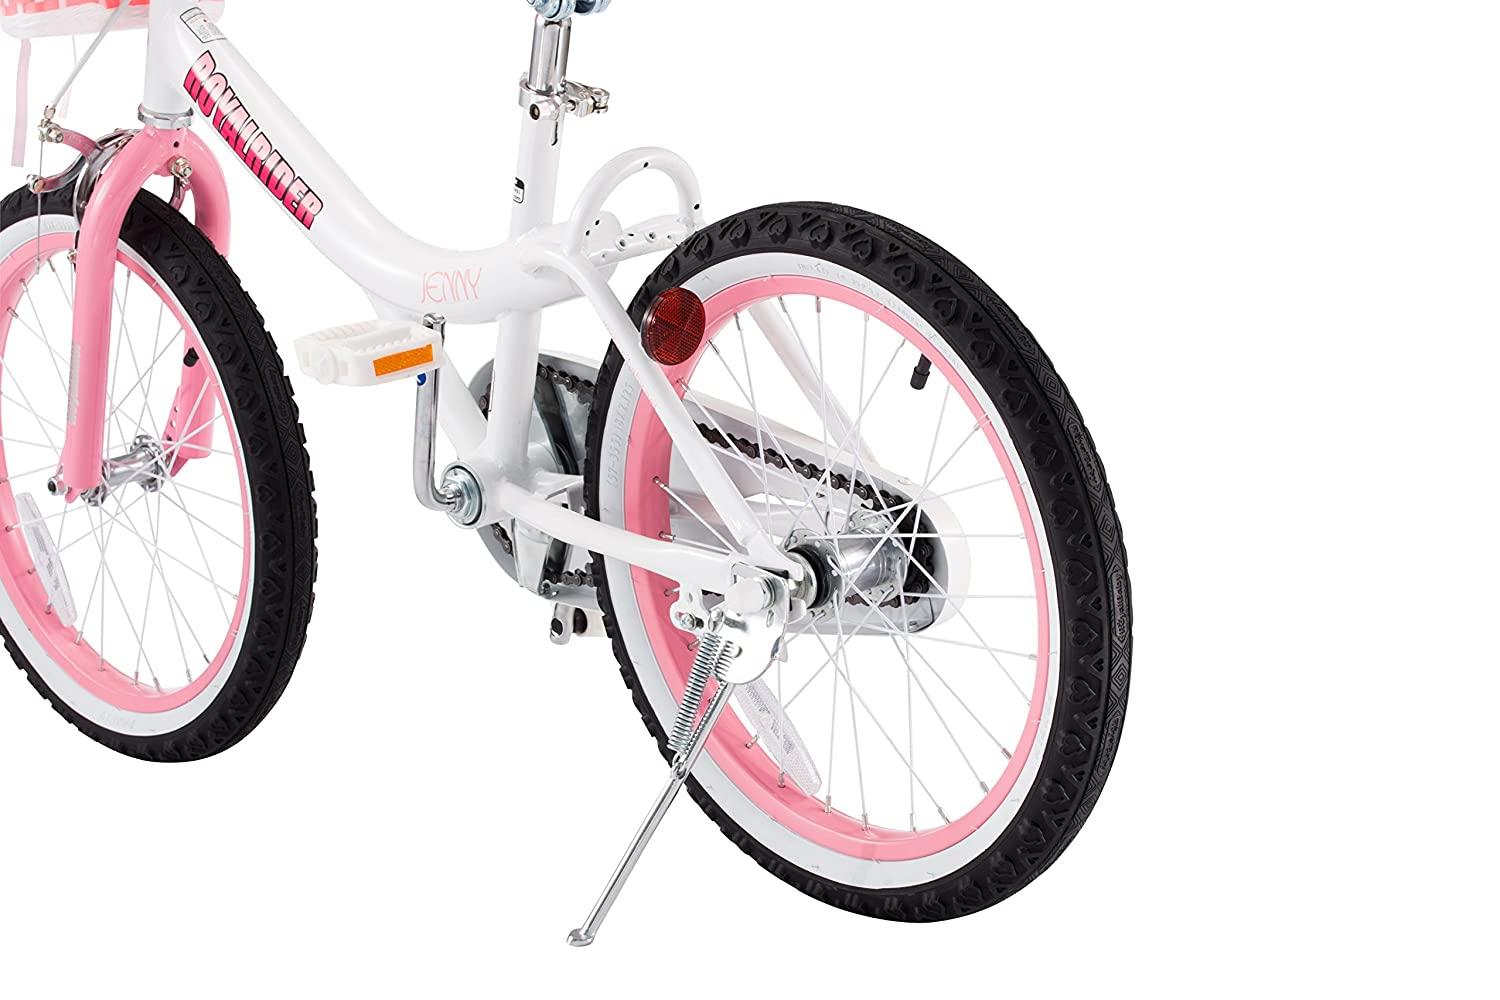 90f0b698f48a Royalbaby Jenny /& Bunny Girls Bike, 12-14-16-18 inch wheels, three colors  available Cycle ...